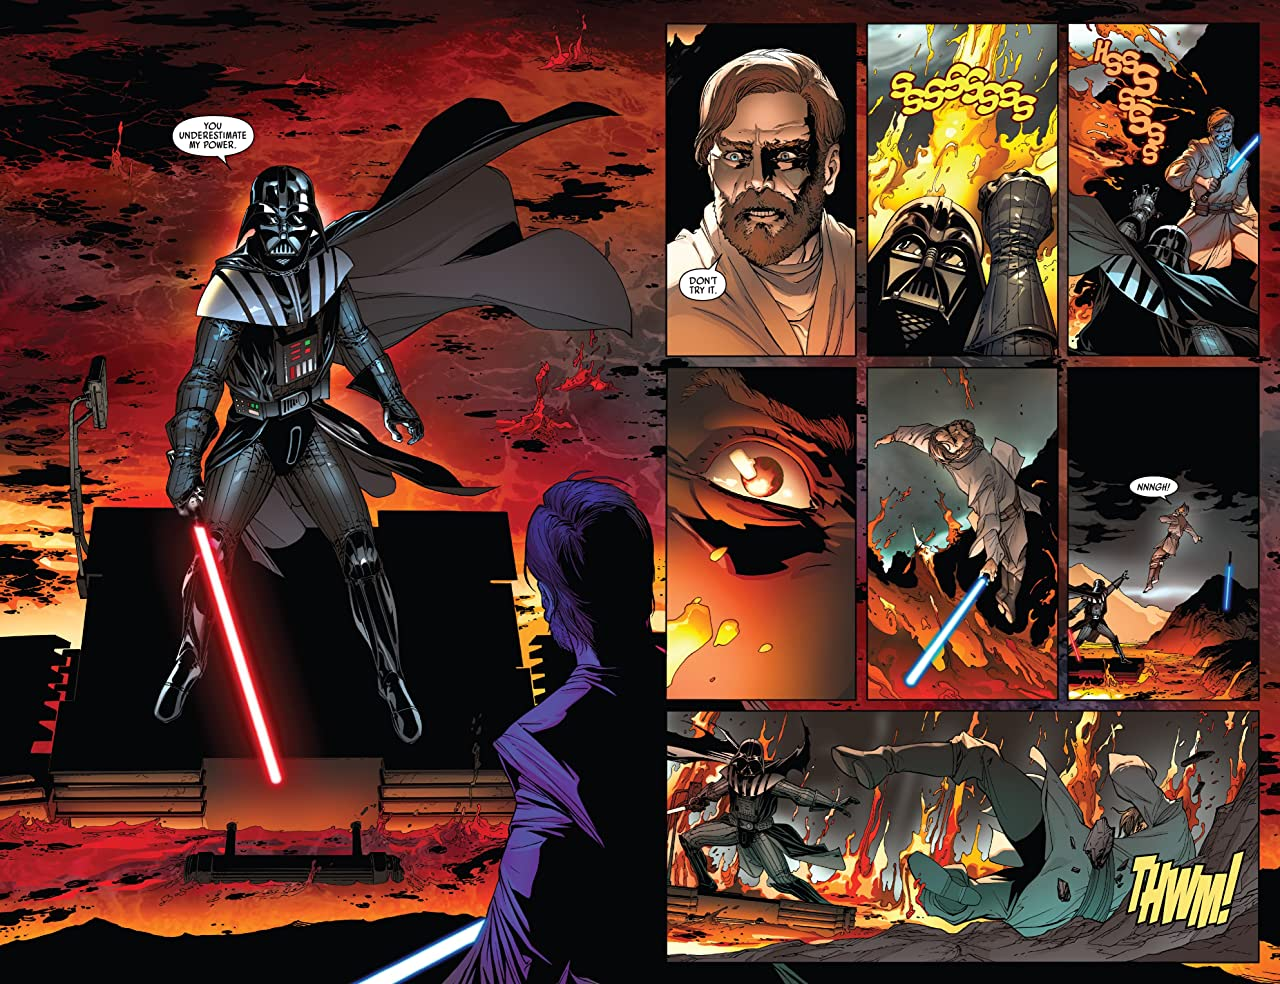 Star Wars: Darth Vader: Dark Lord of the Sith Vol. 3: The Burning Seas